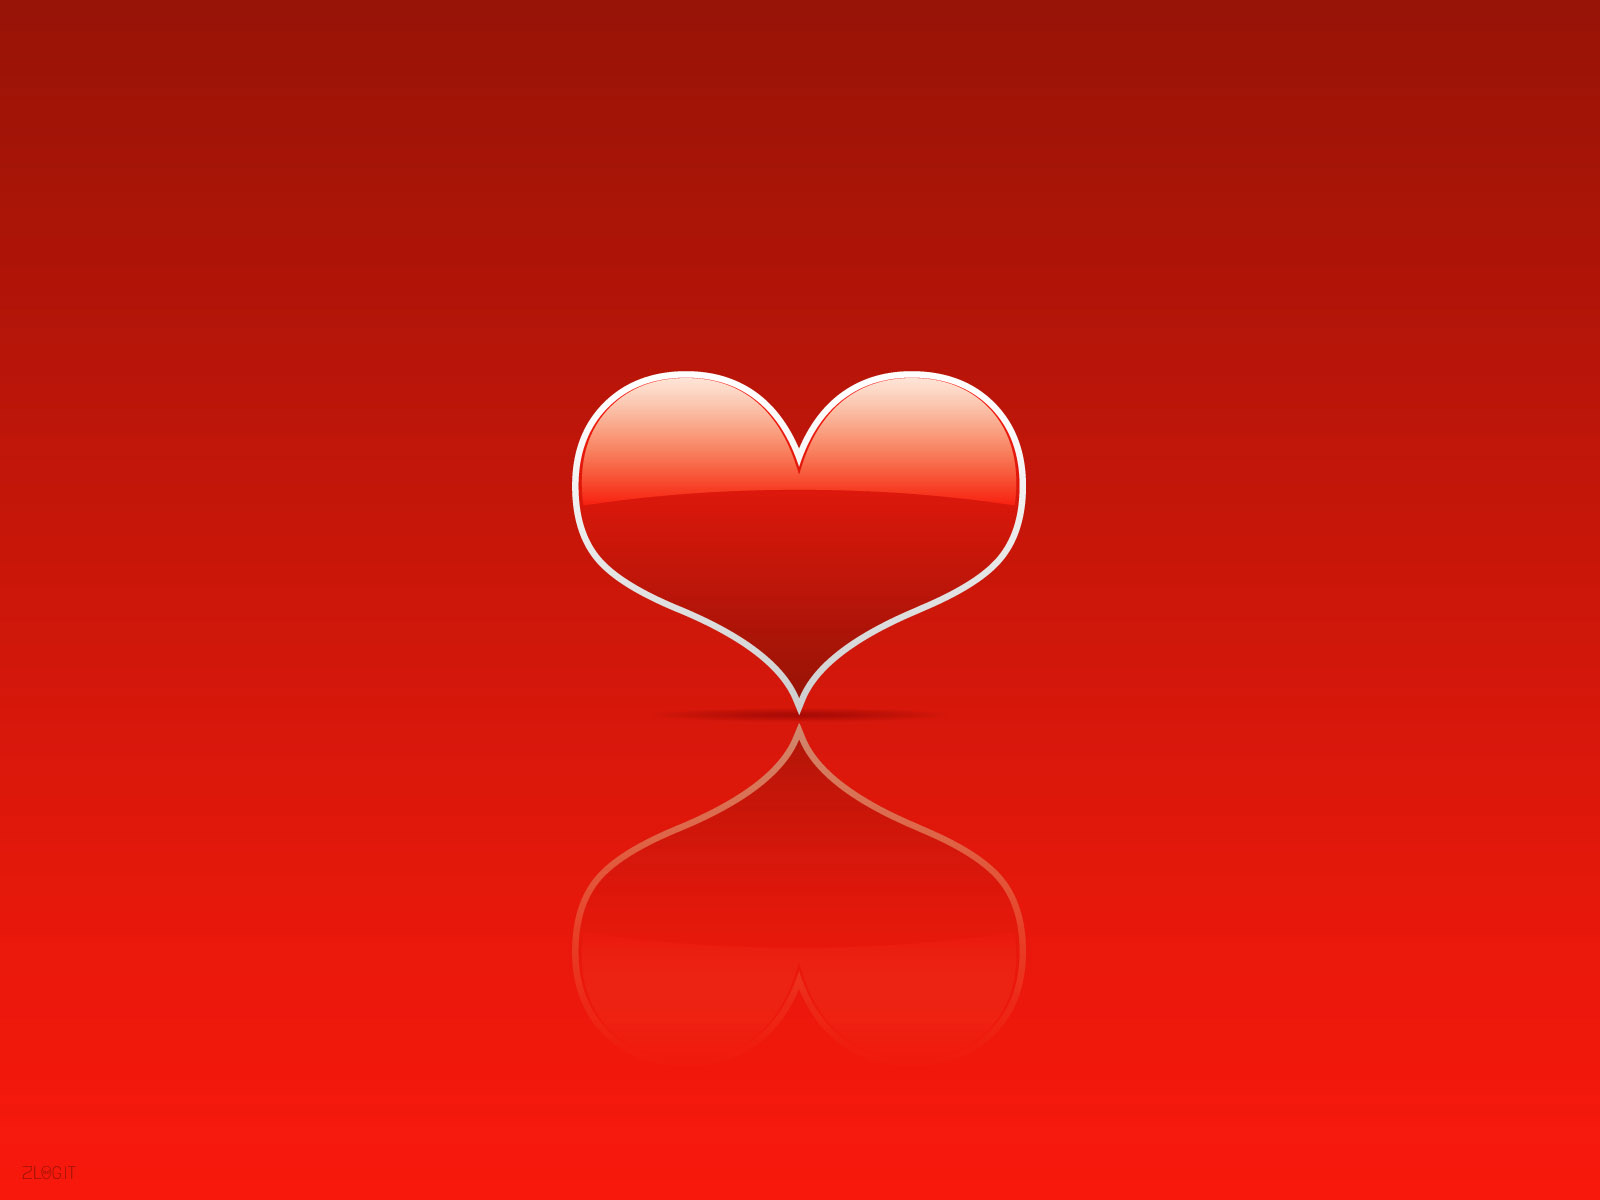 3d Heart Wallpaper Hd Amor Fondos De Pantalla De Amor Wallpapers Para